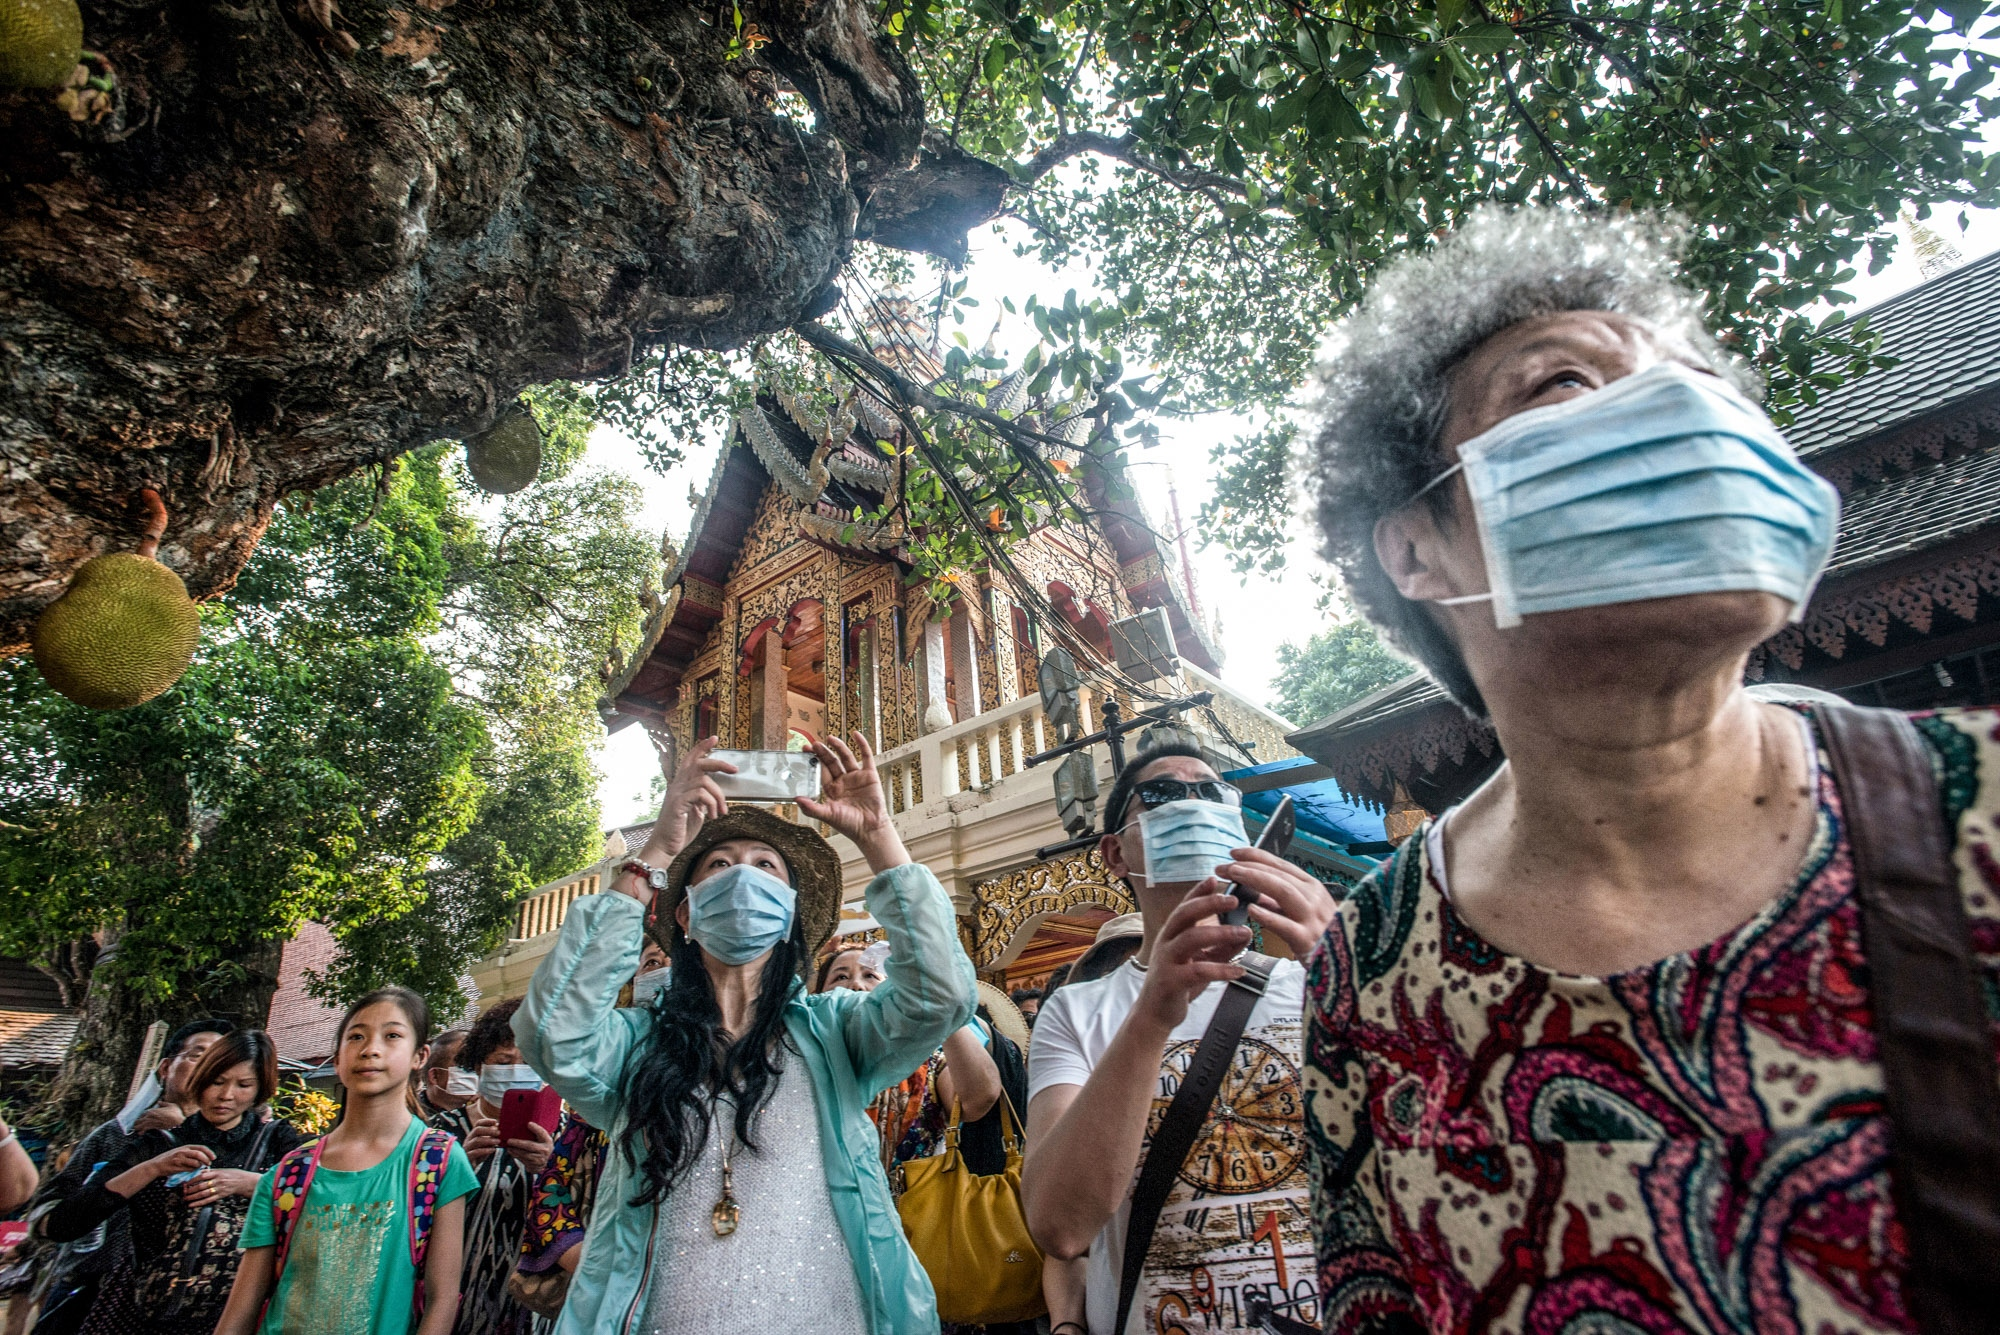 Asian tourists wear dust protection masks during making a visit to tourist destinations in the smog season.